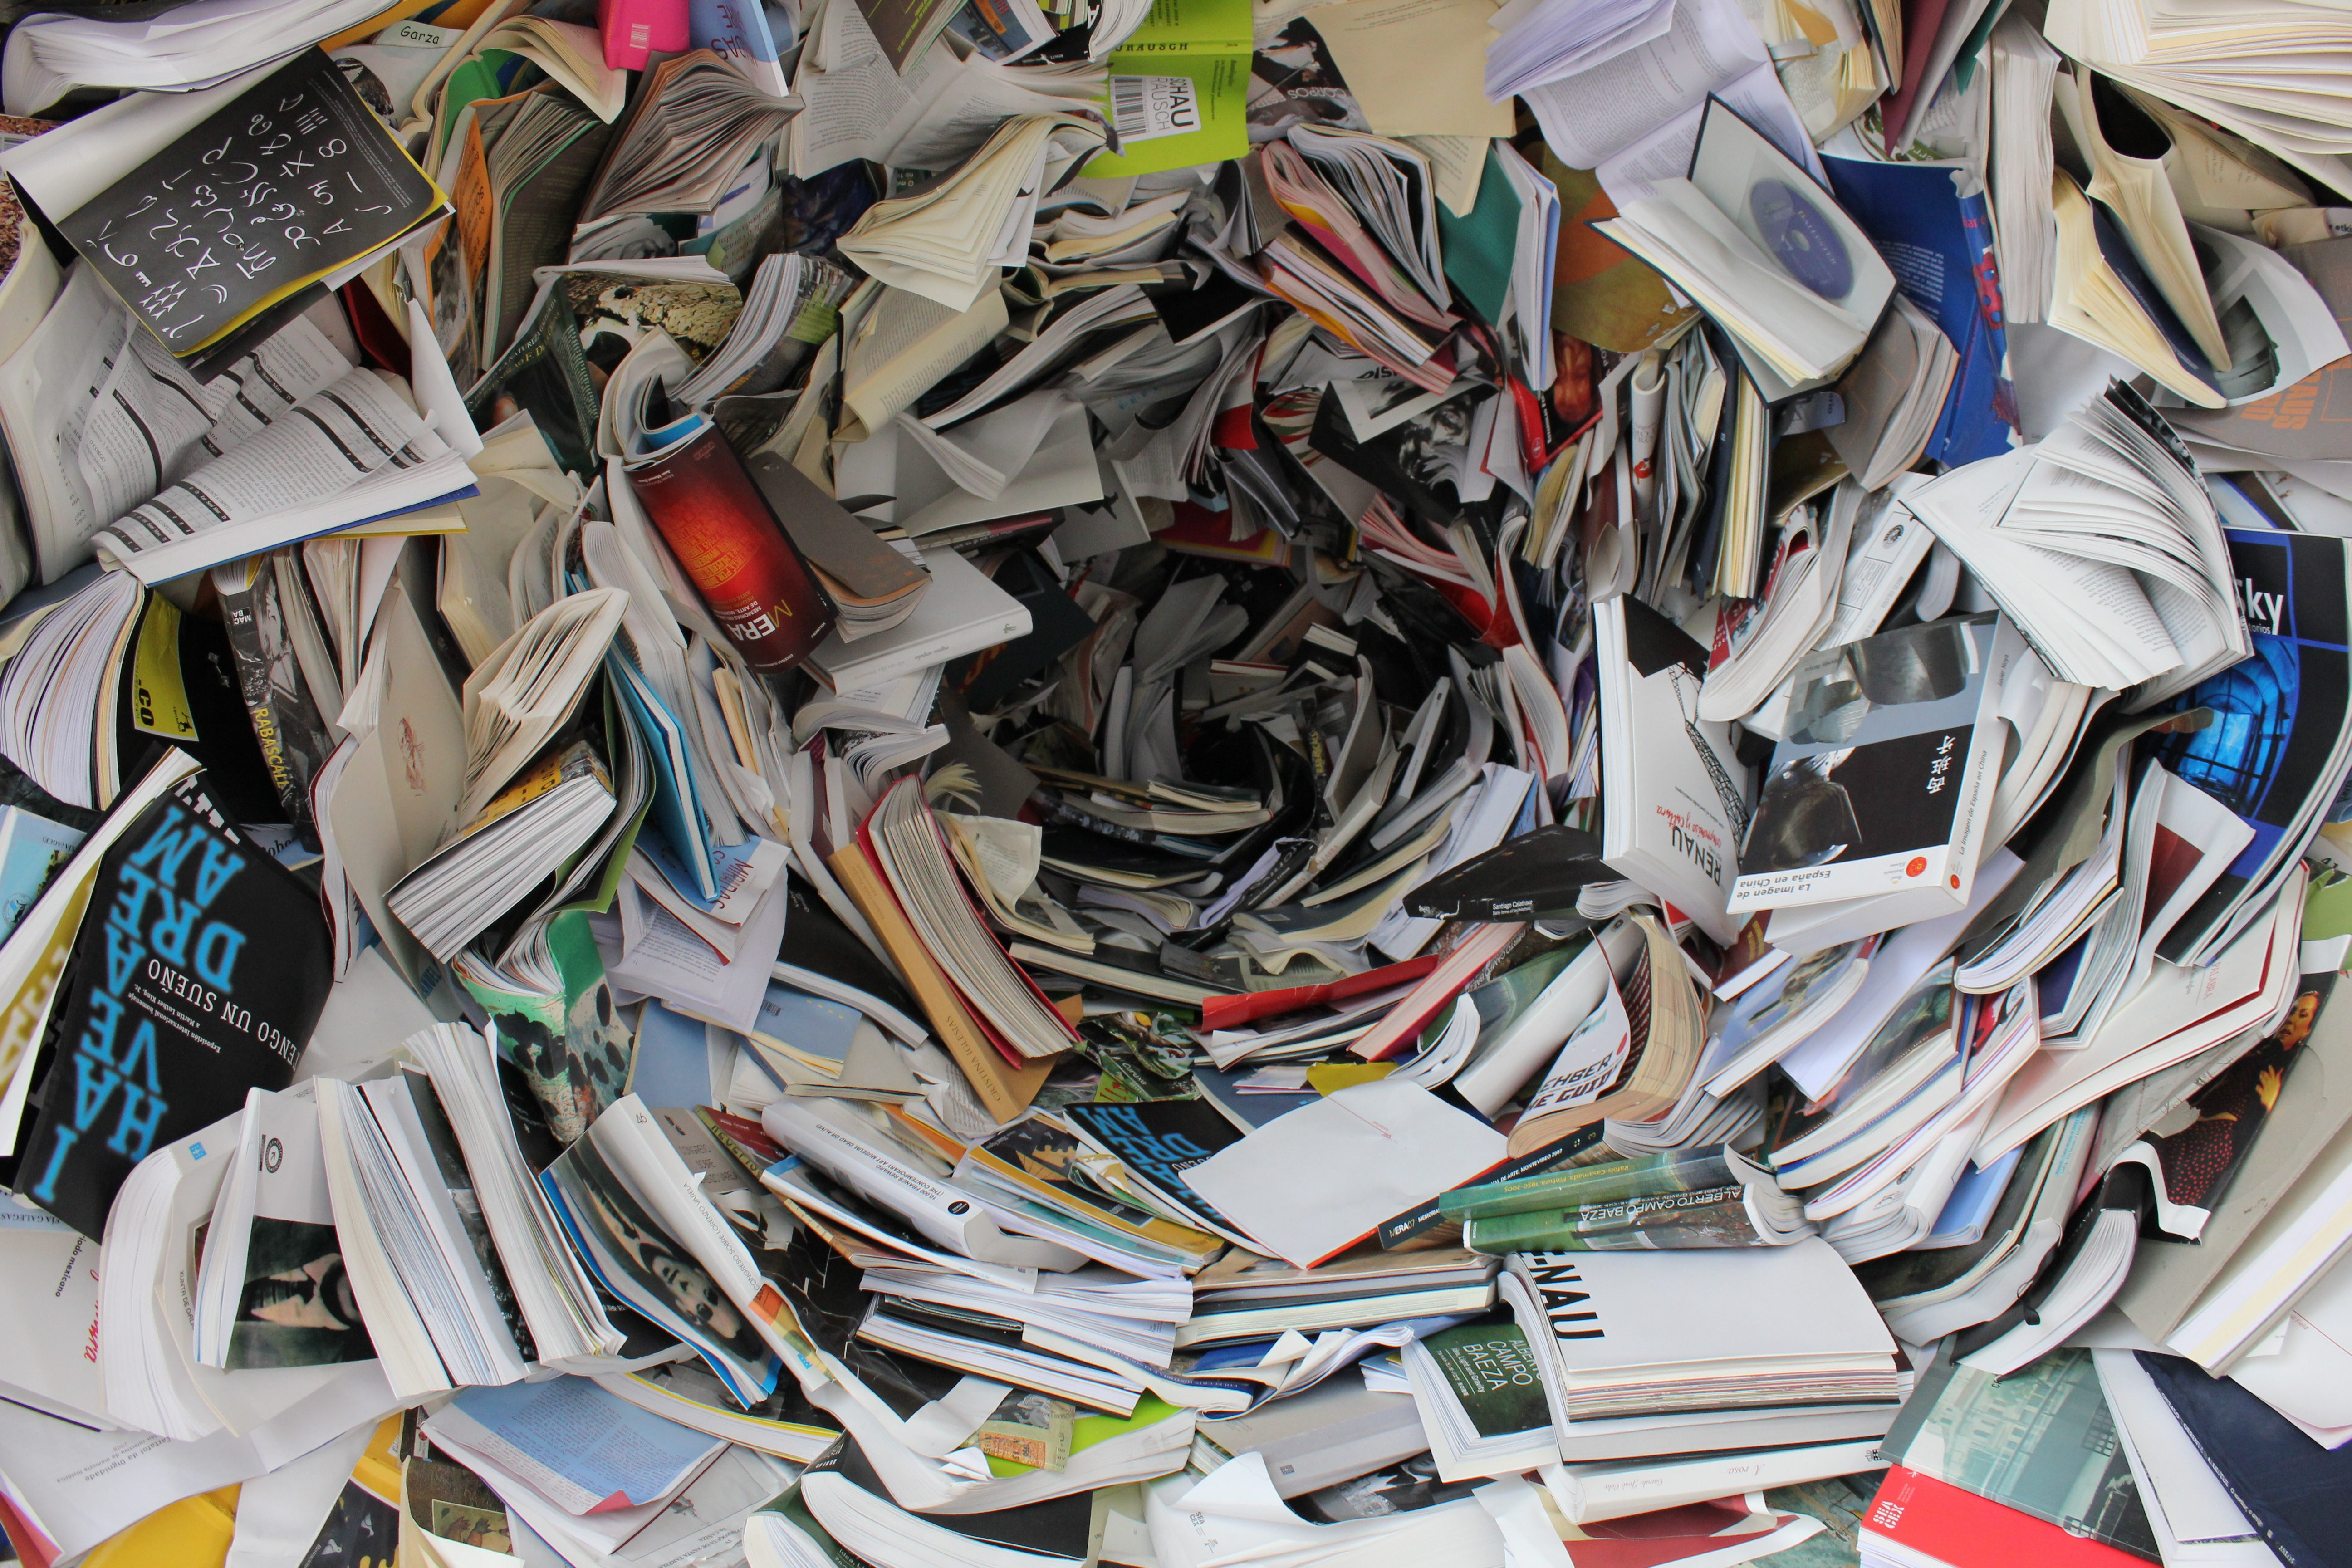 Paper Clutter: What to Toss & What to Keep